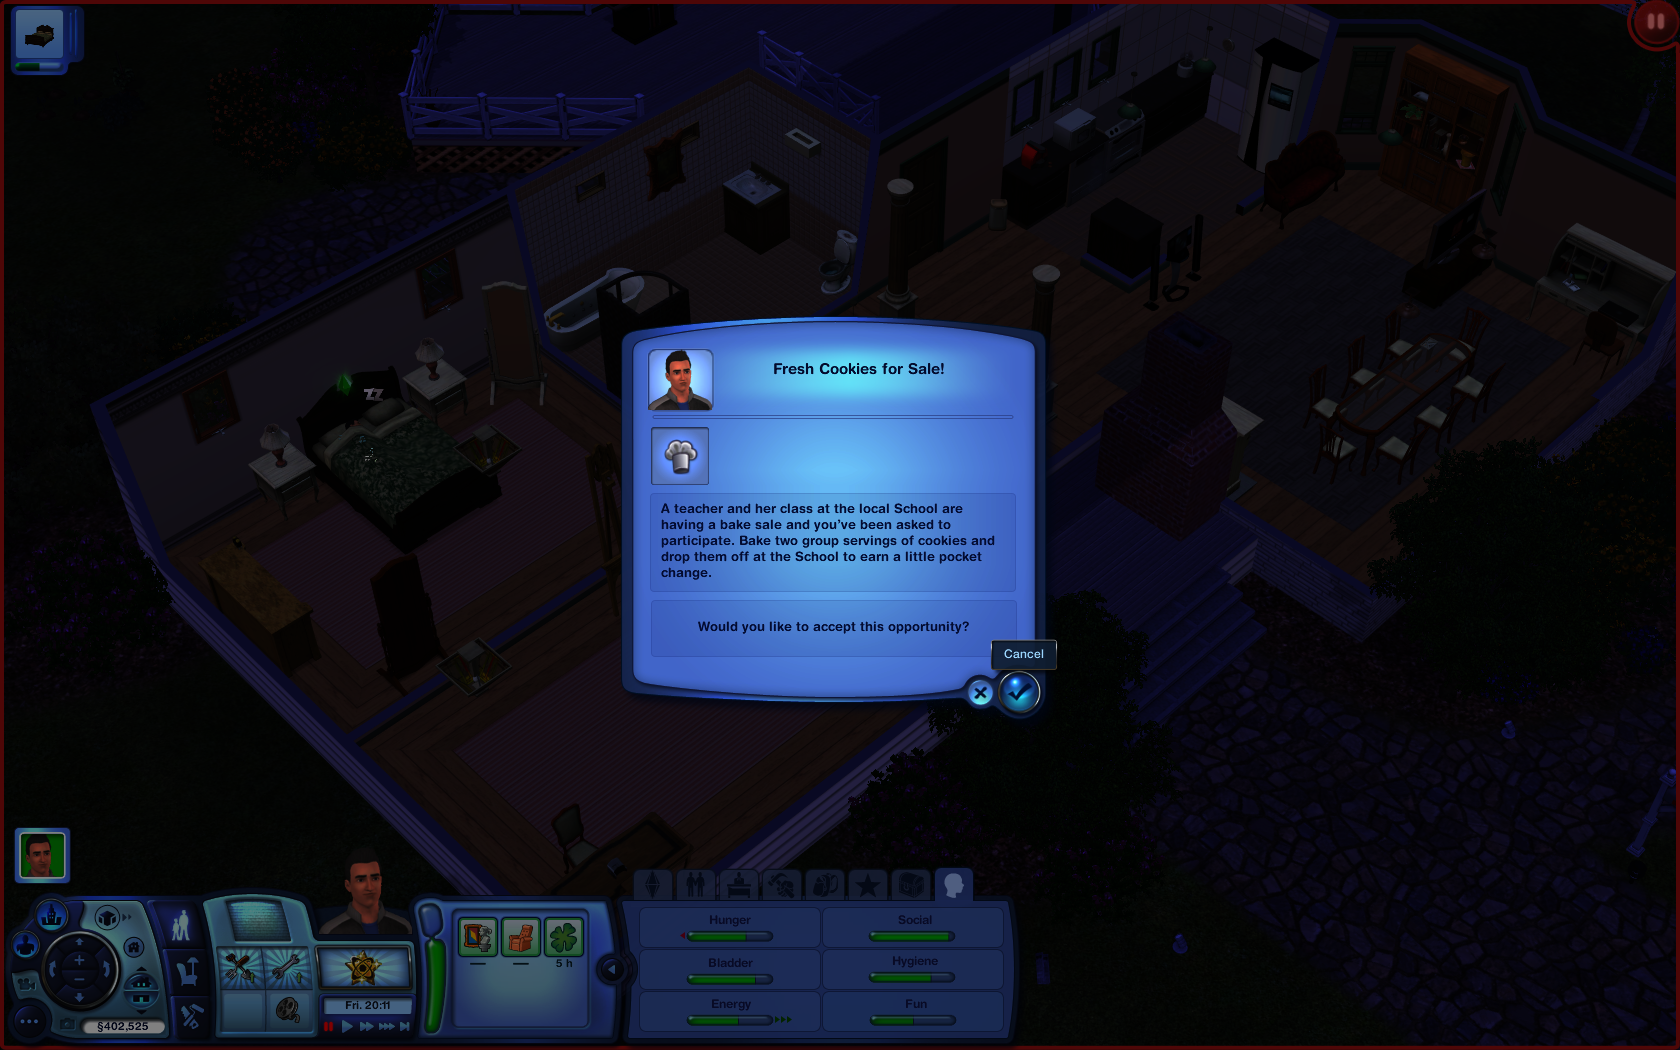 GC09: Sims 3 World Adventures to feature major talent